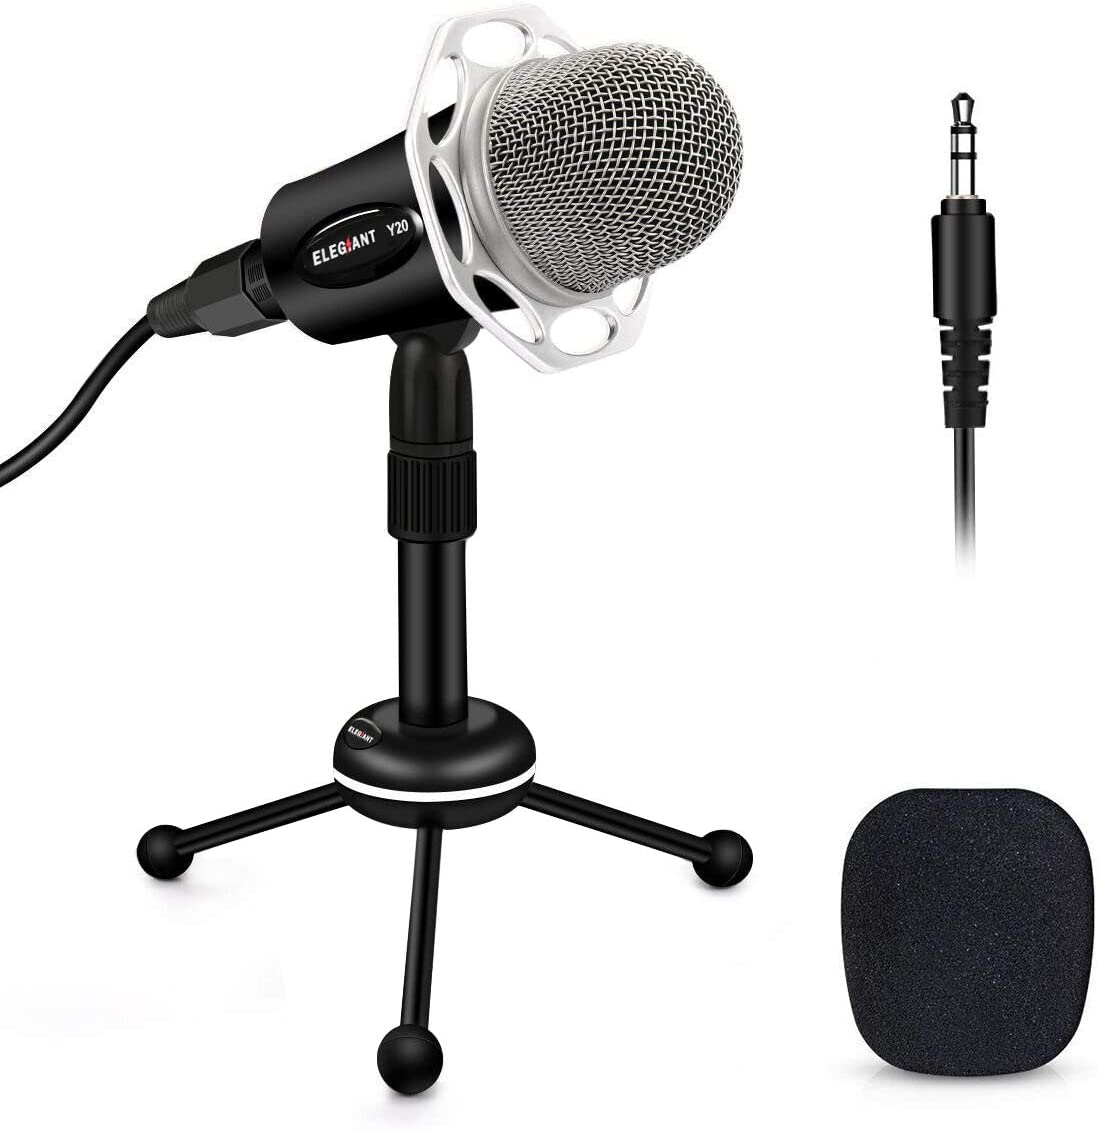 ELEGIANT PC Microphone, Y20 Portable Condenser Microphone 3.5mm Plug & Play with Tripod Stand Home Studio Recording Microphone for Computer, Smartphone, Podcasting Karaoke, YouTube, Skype, Games